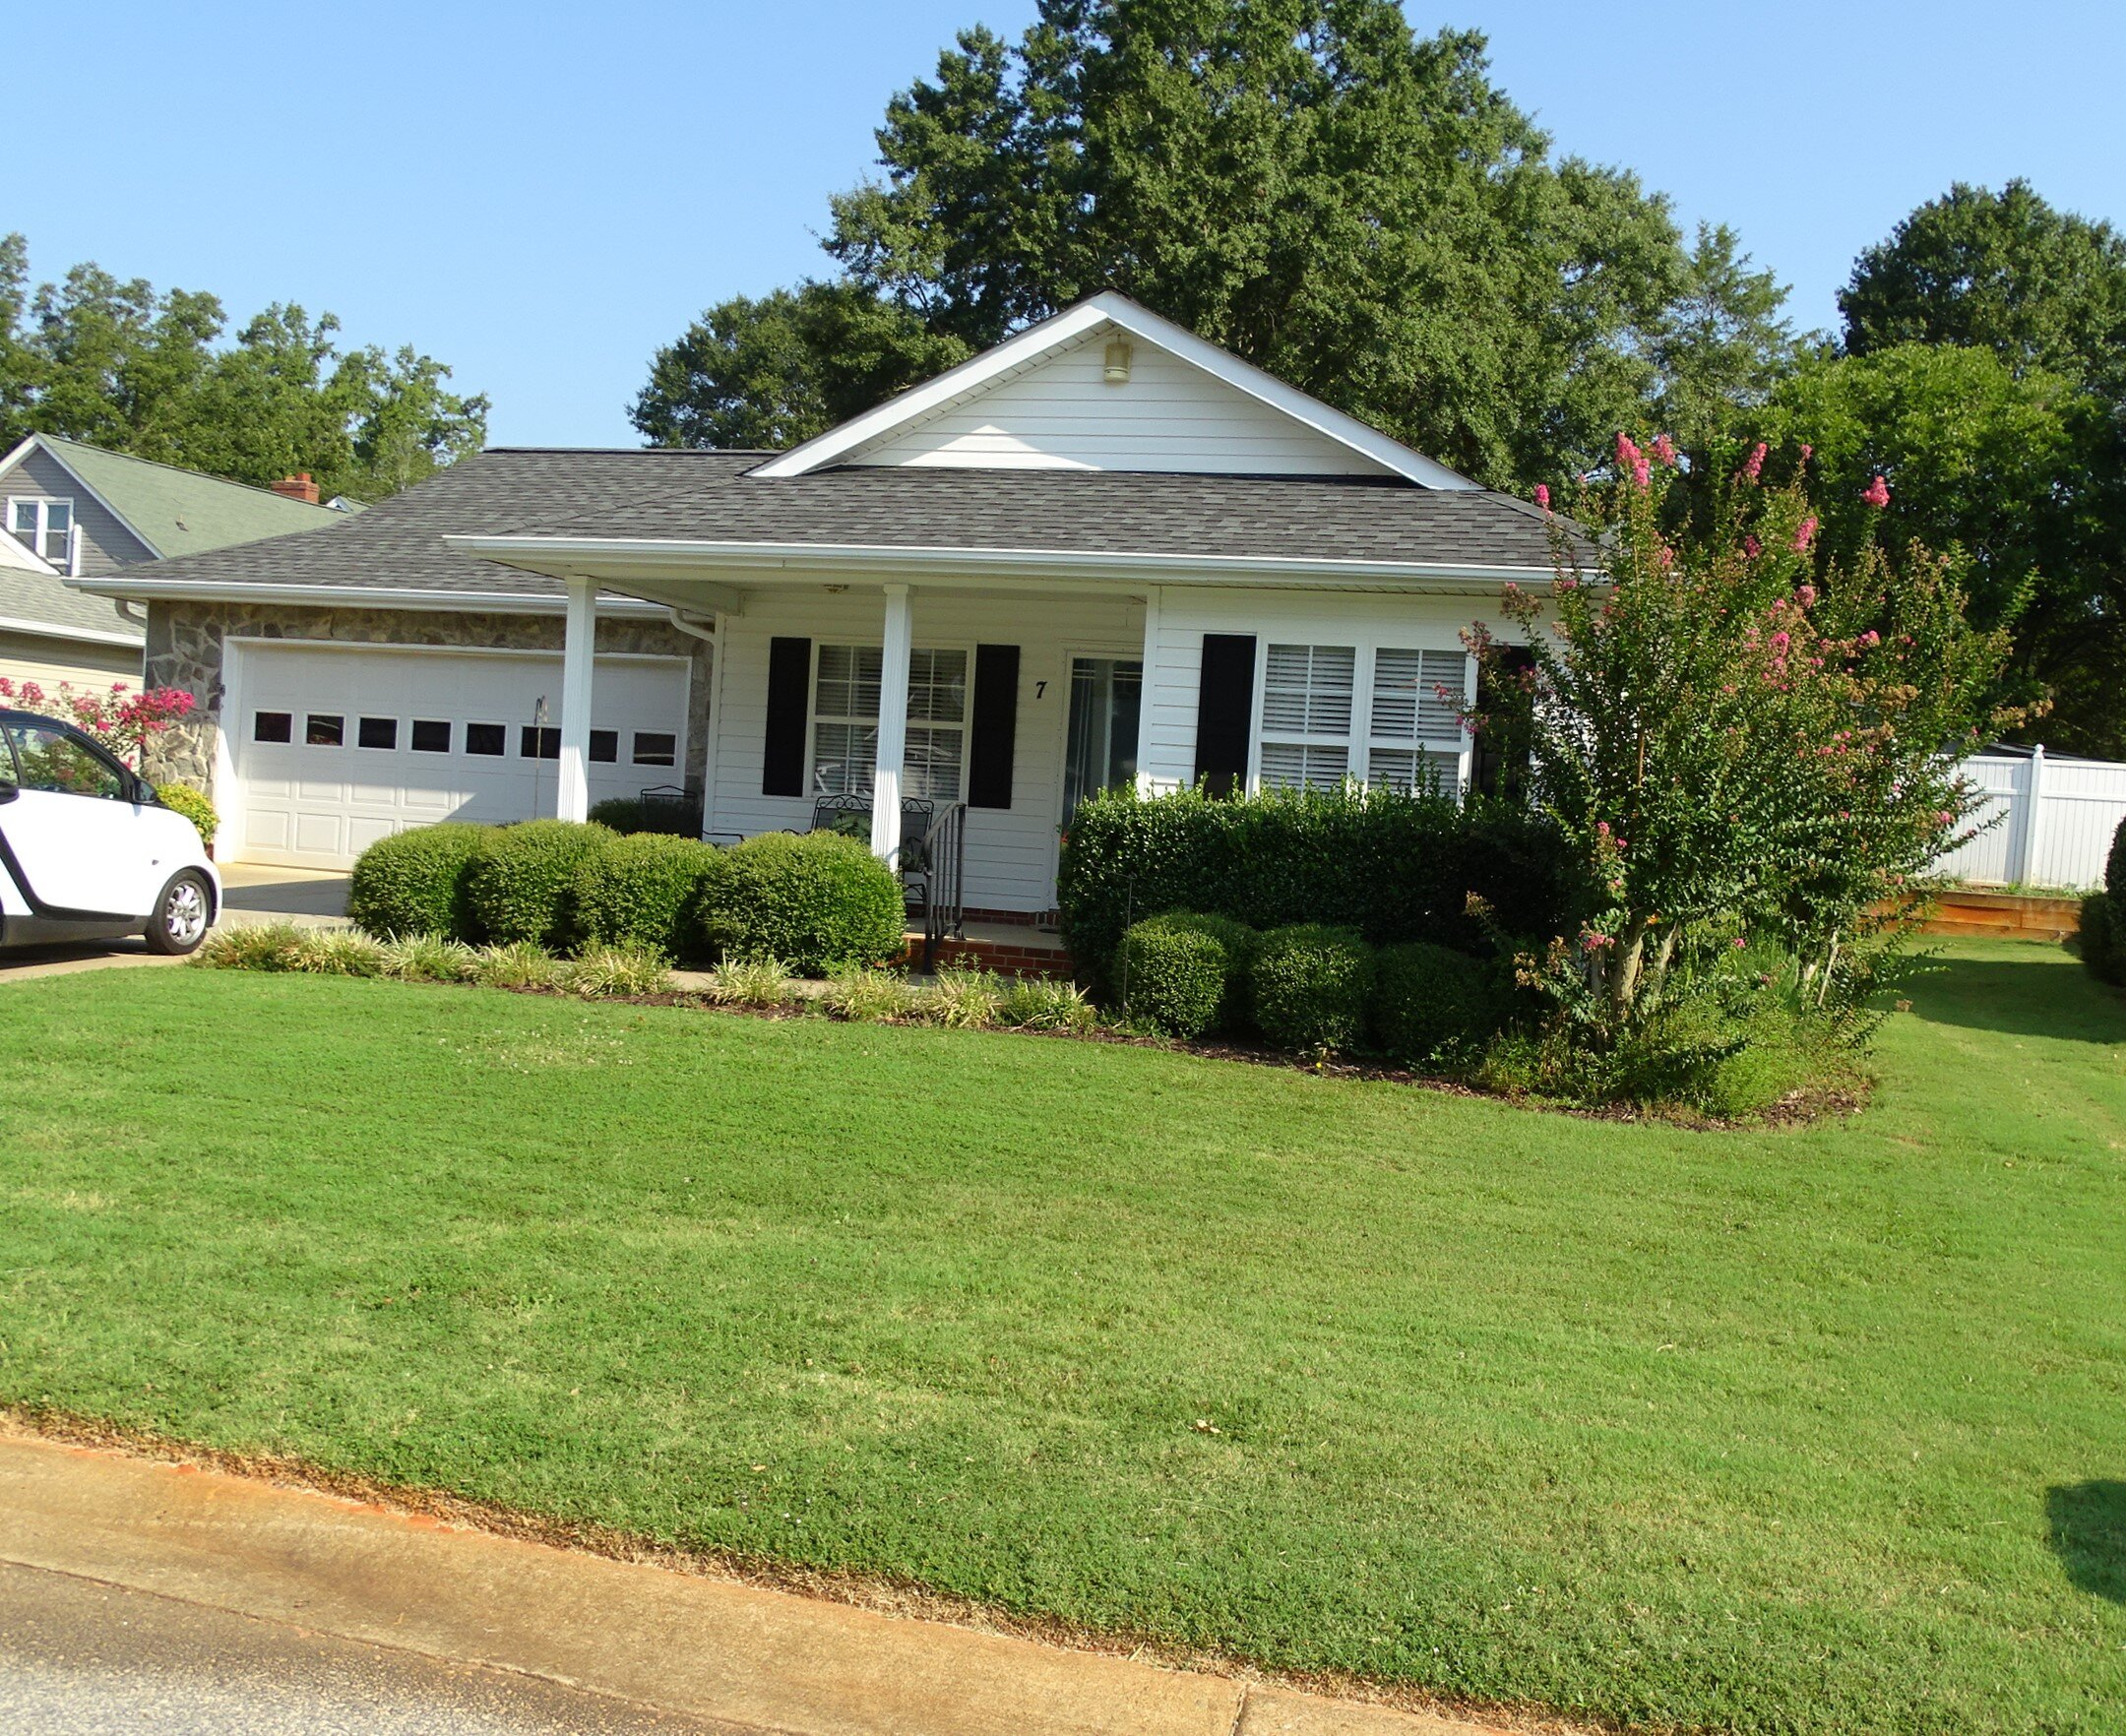 REAl Estate Auction - 7 Anniston WayGreenville SC, 29617Thursday September 26thPersonal Property:by Terry Hester begins at 4 PMReal Estate:by Larry J. Meares begins at 6 PMFor More Information Contact:Larry J. Meares, BIC, SCAL 109 at (864)444-1321Terry Hester, at 864-423-1824